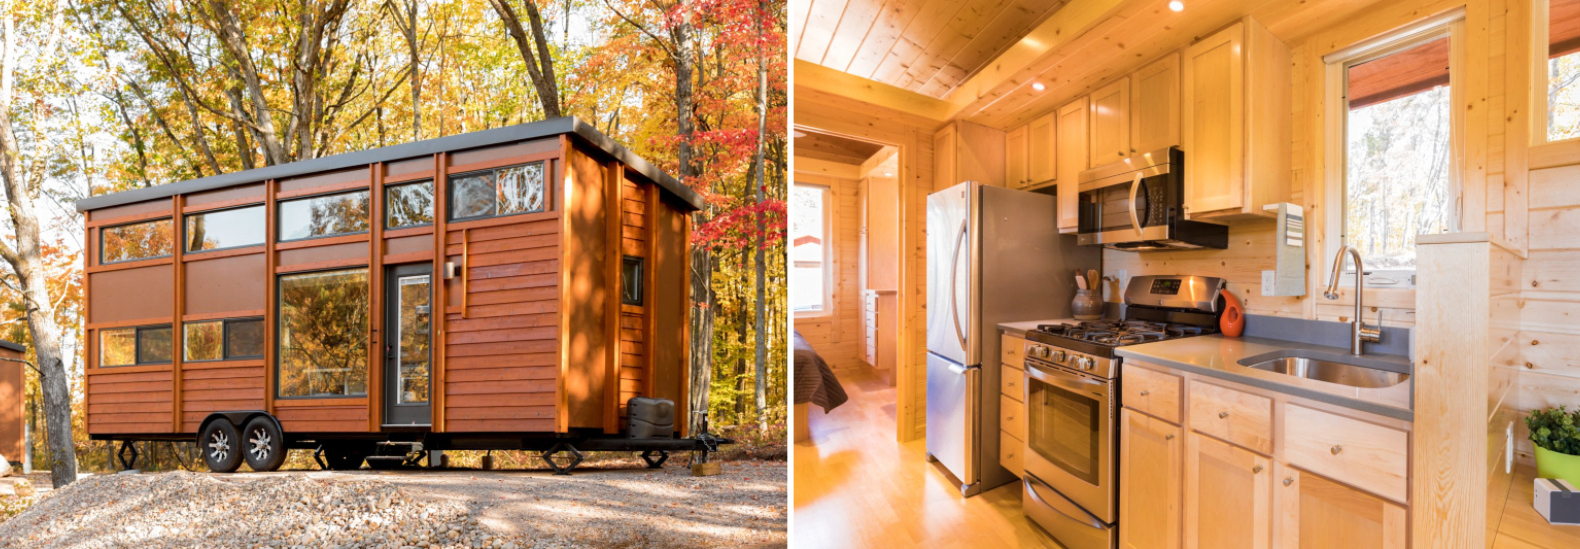 Tiny home resort opens in idyllic Wisconsin forest setting